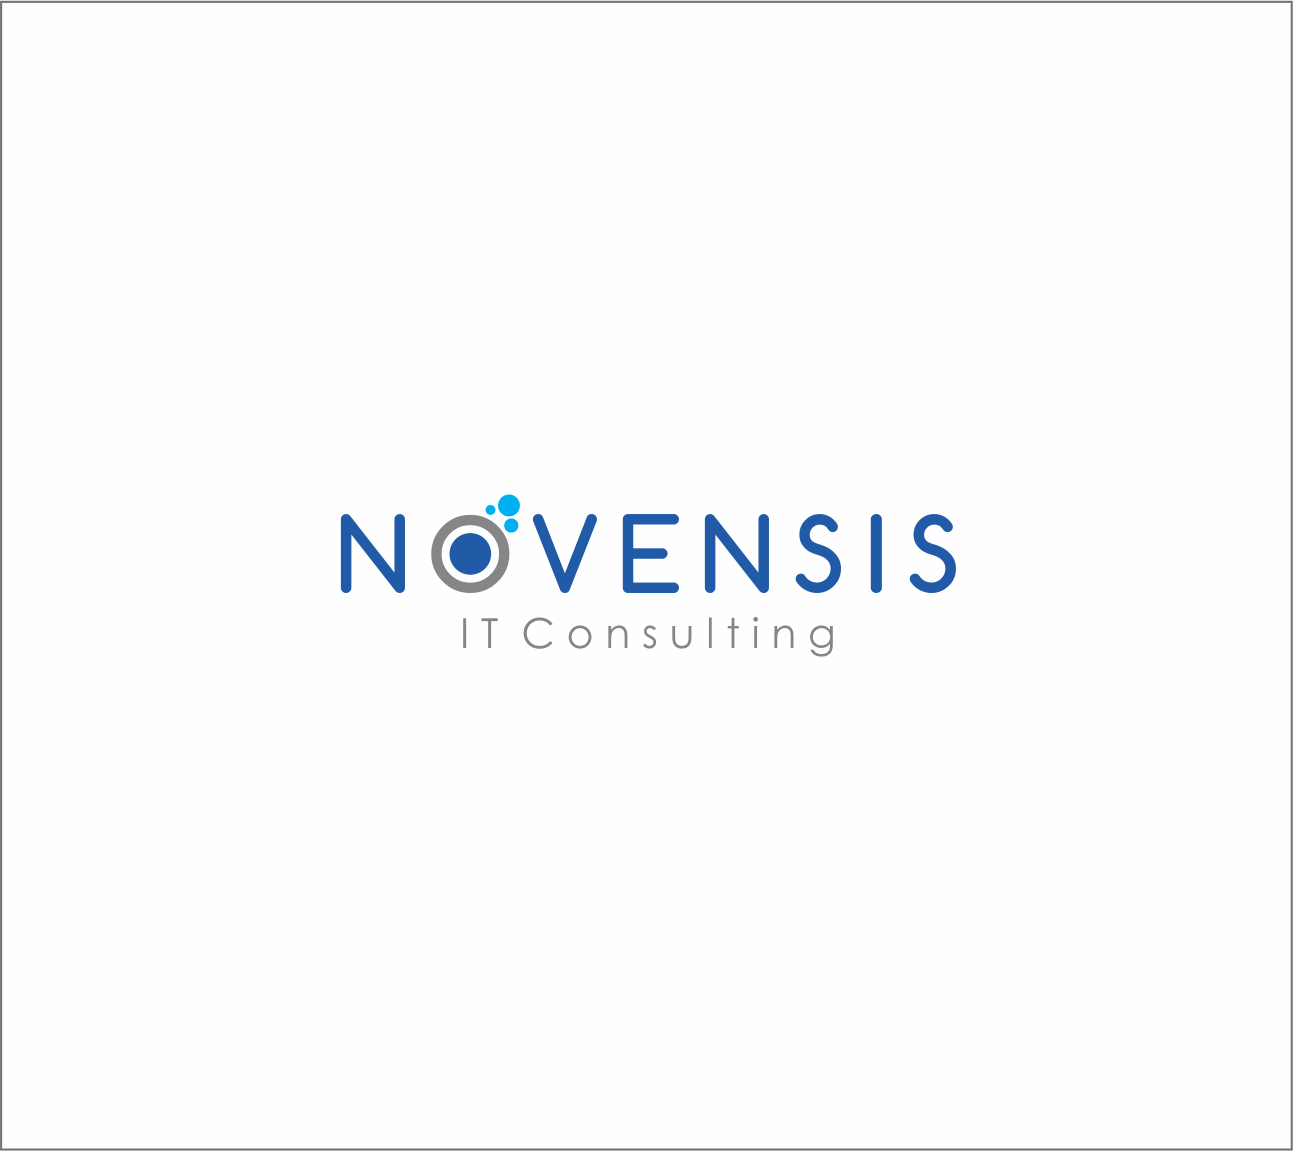 Logo Design by Armada Jamaluddin - Entry No. 133 in the Logo Design Contest Novensis Logo Design.